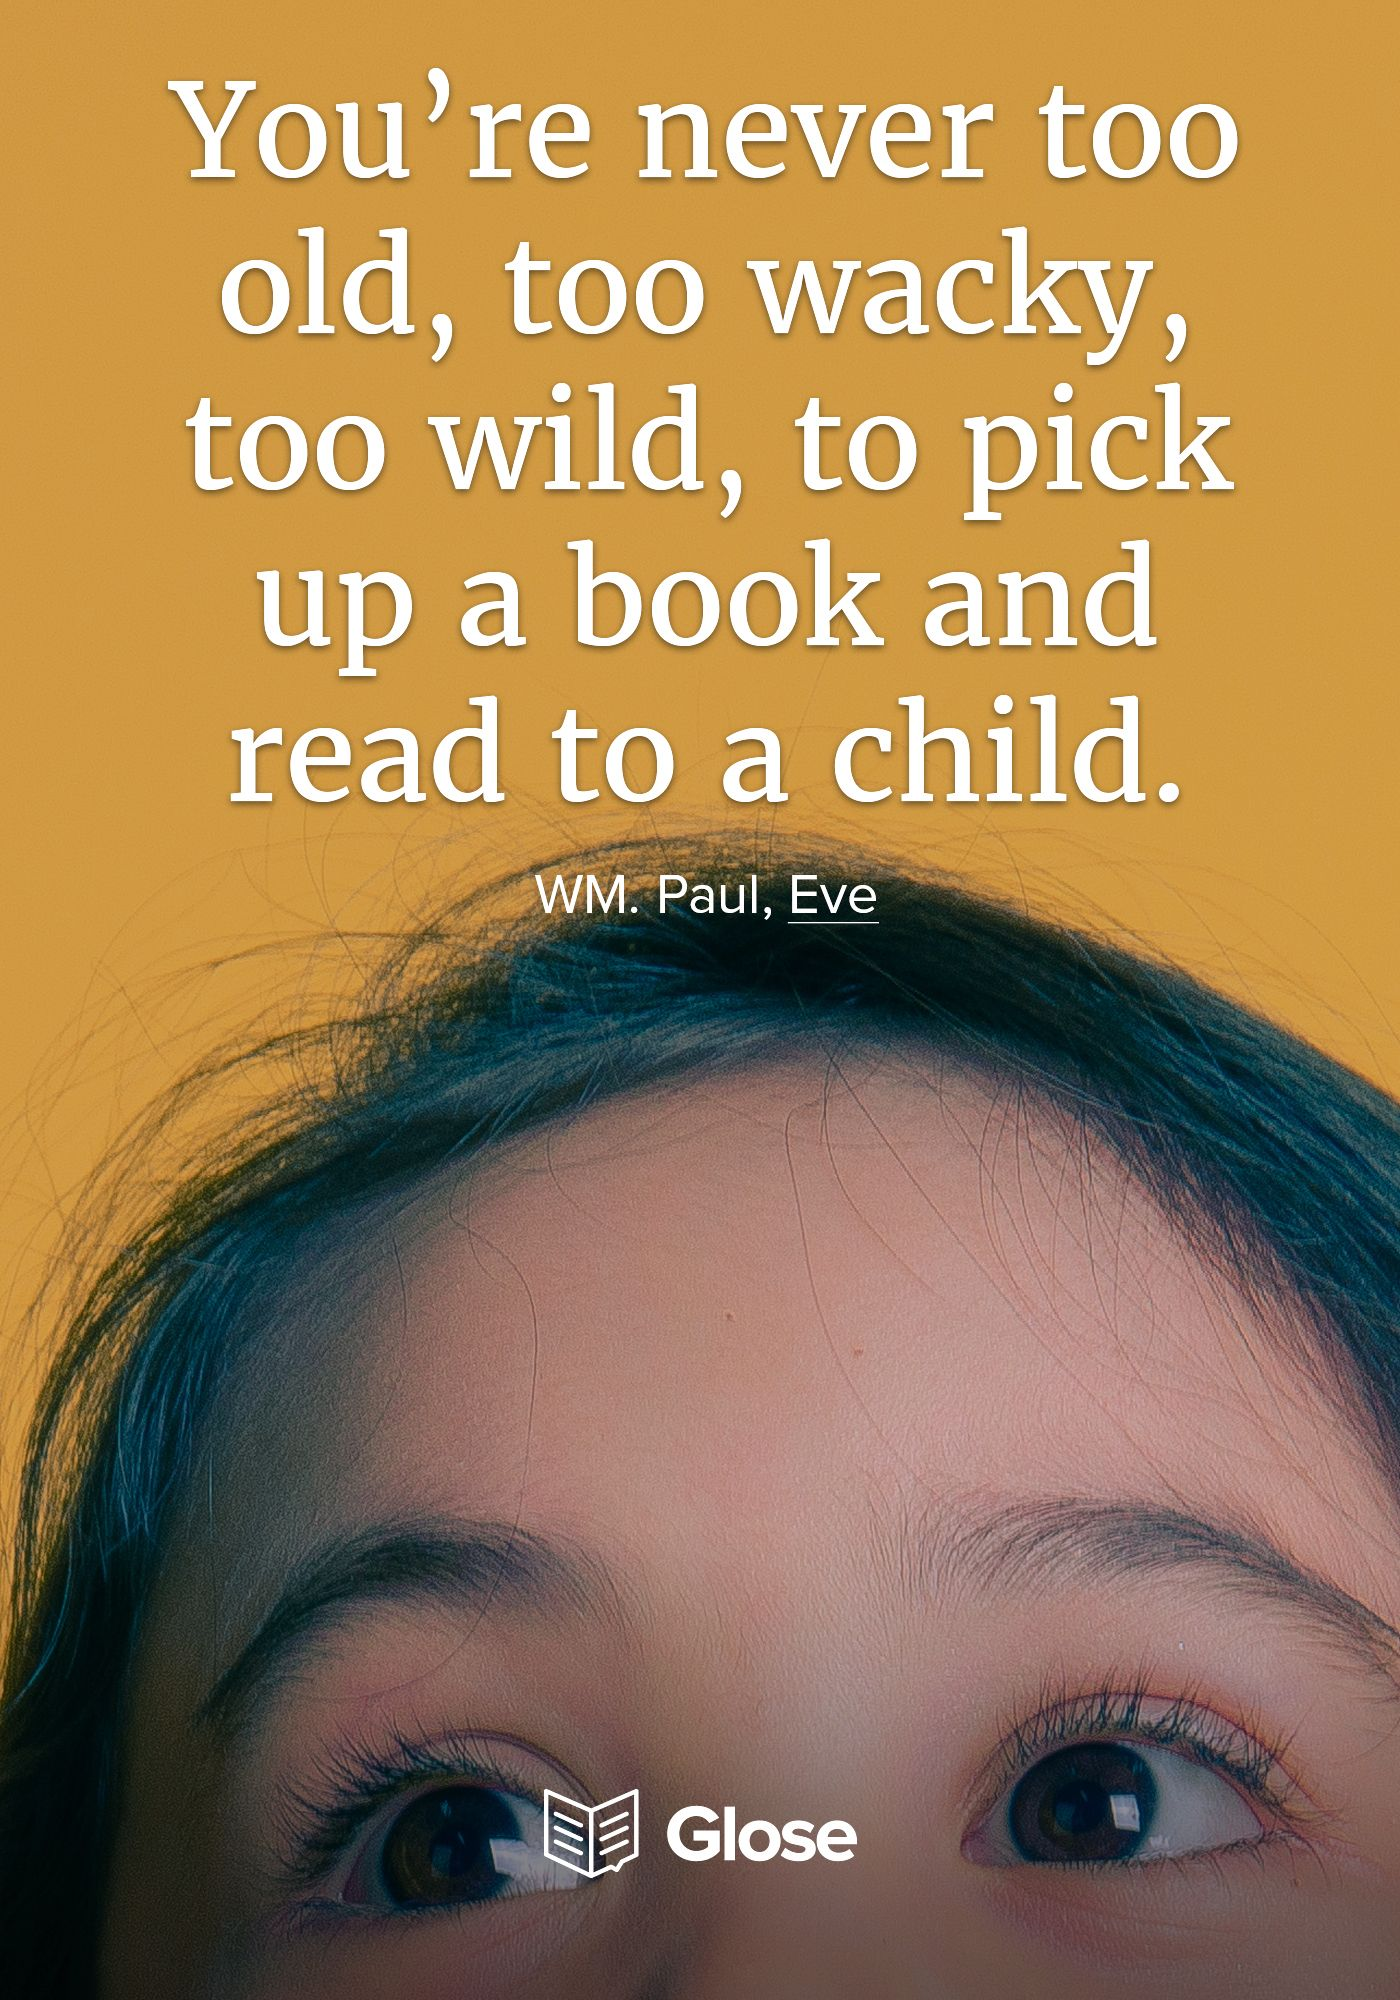 You're never too old, too wacky, to wild, to pick up a book and read it to a child!